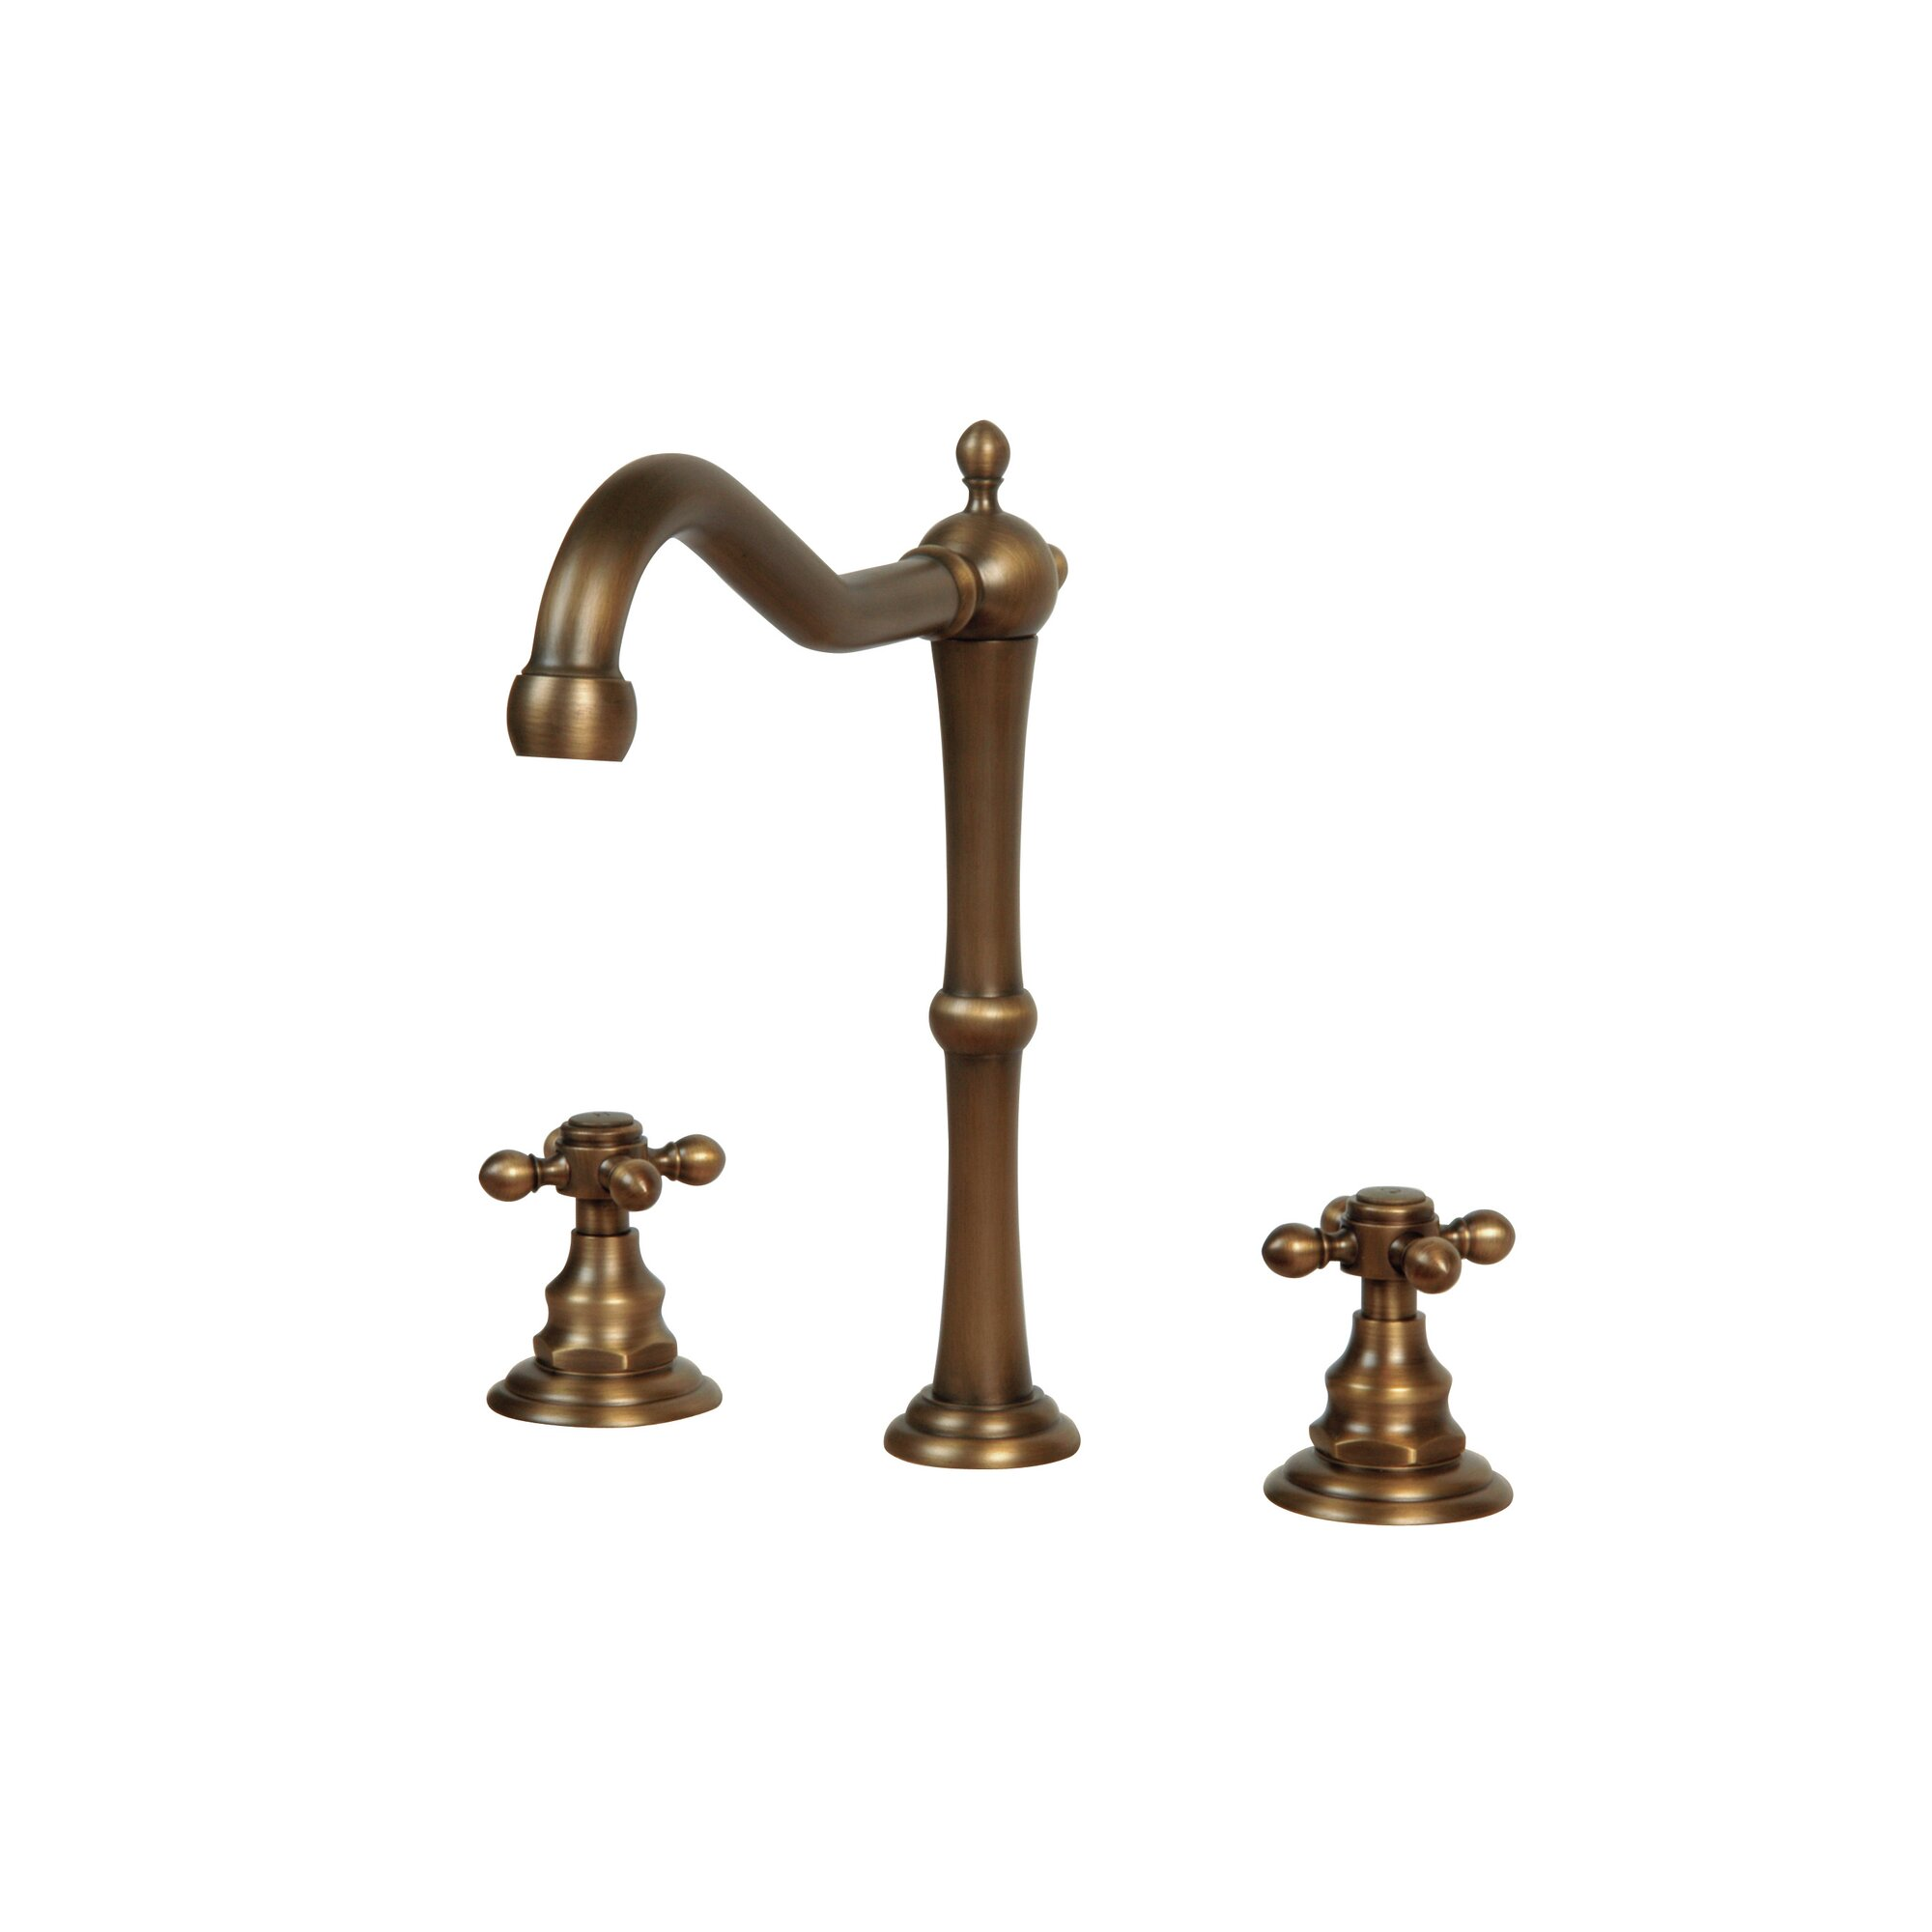 Antique brass bathroom faucets widespread - Antique Brass Bathroom Faucets Widespread Widespread Bathroom Faucet With Double Cross Handles